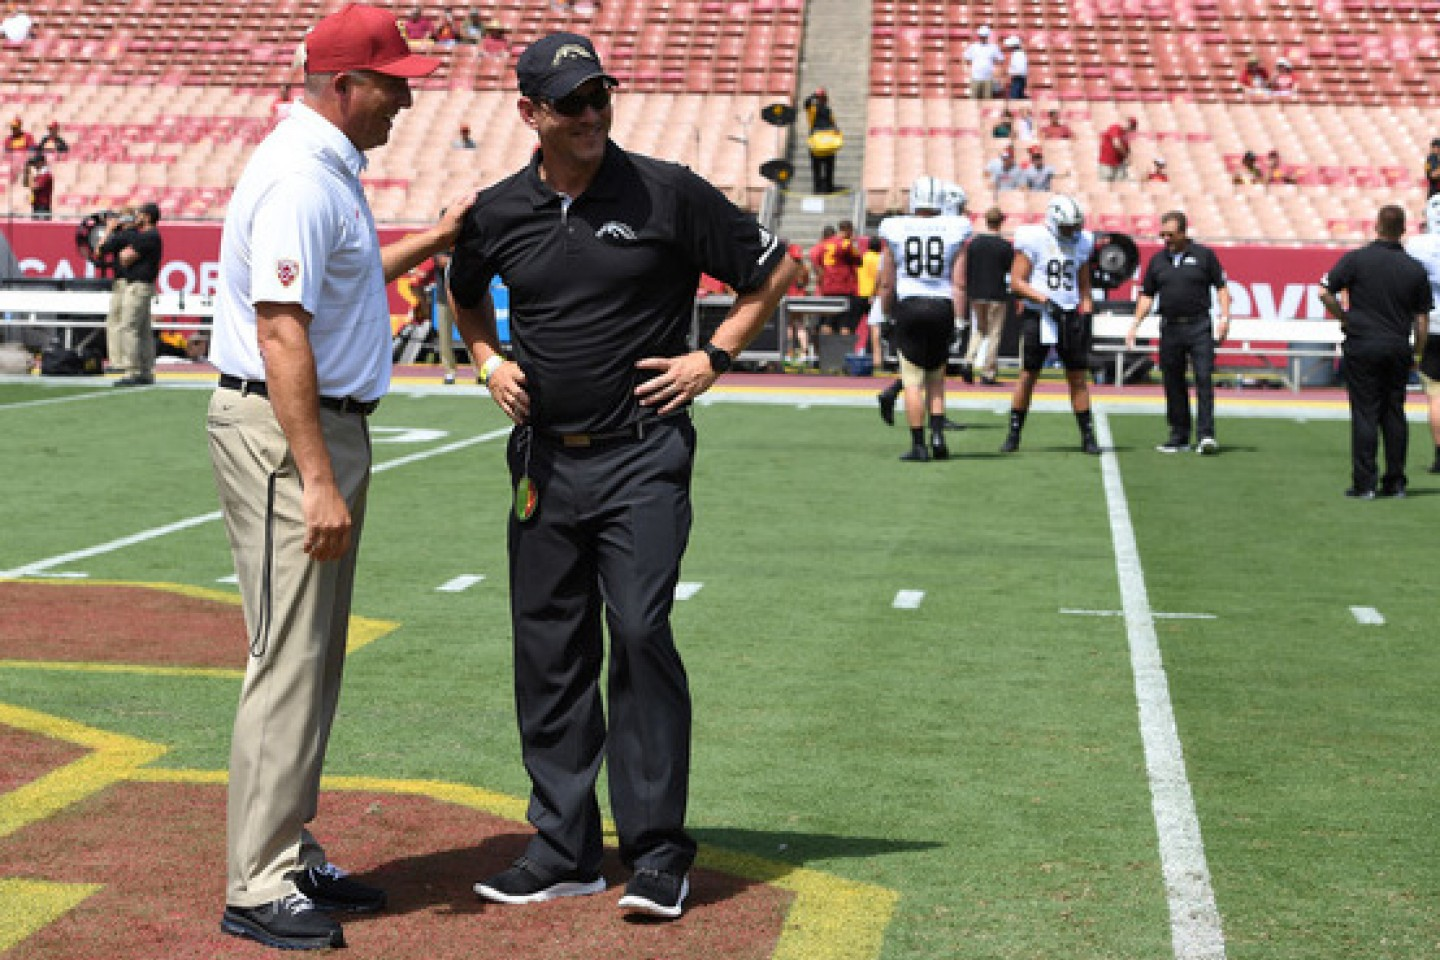 Lester and Helton standing together on the football field.